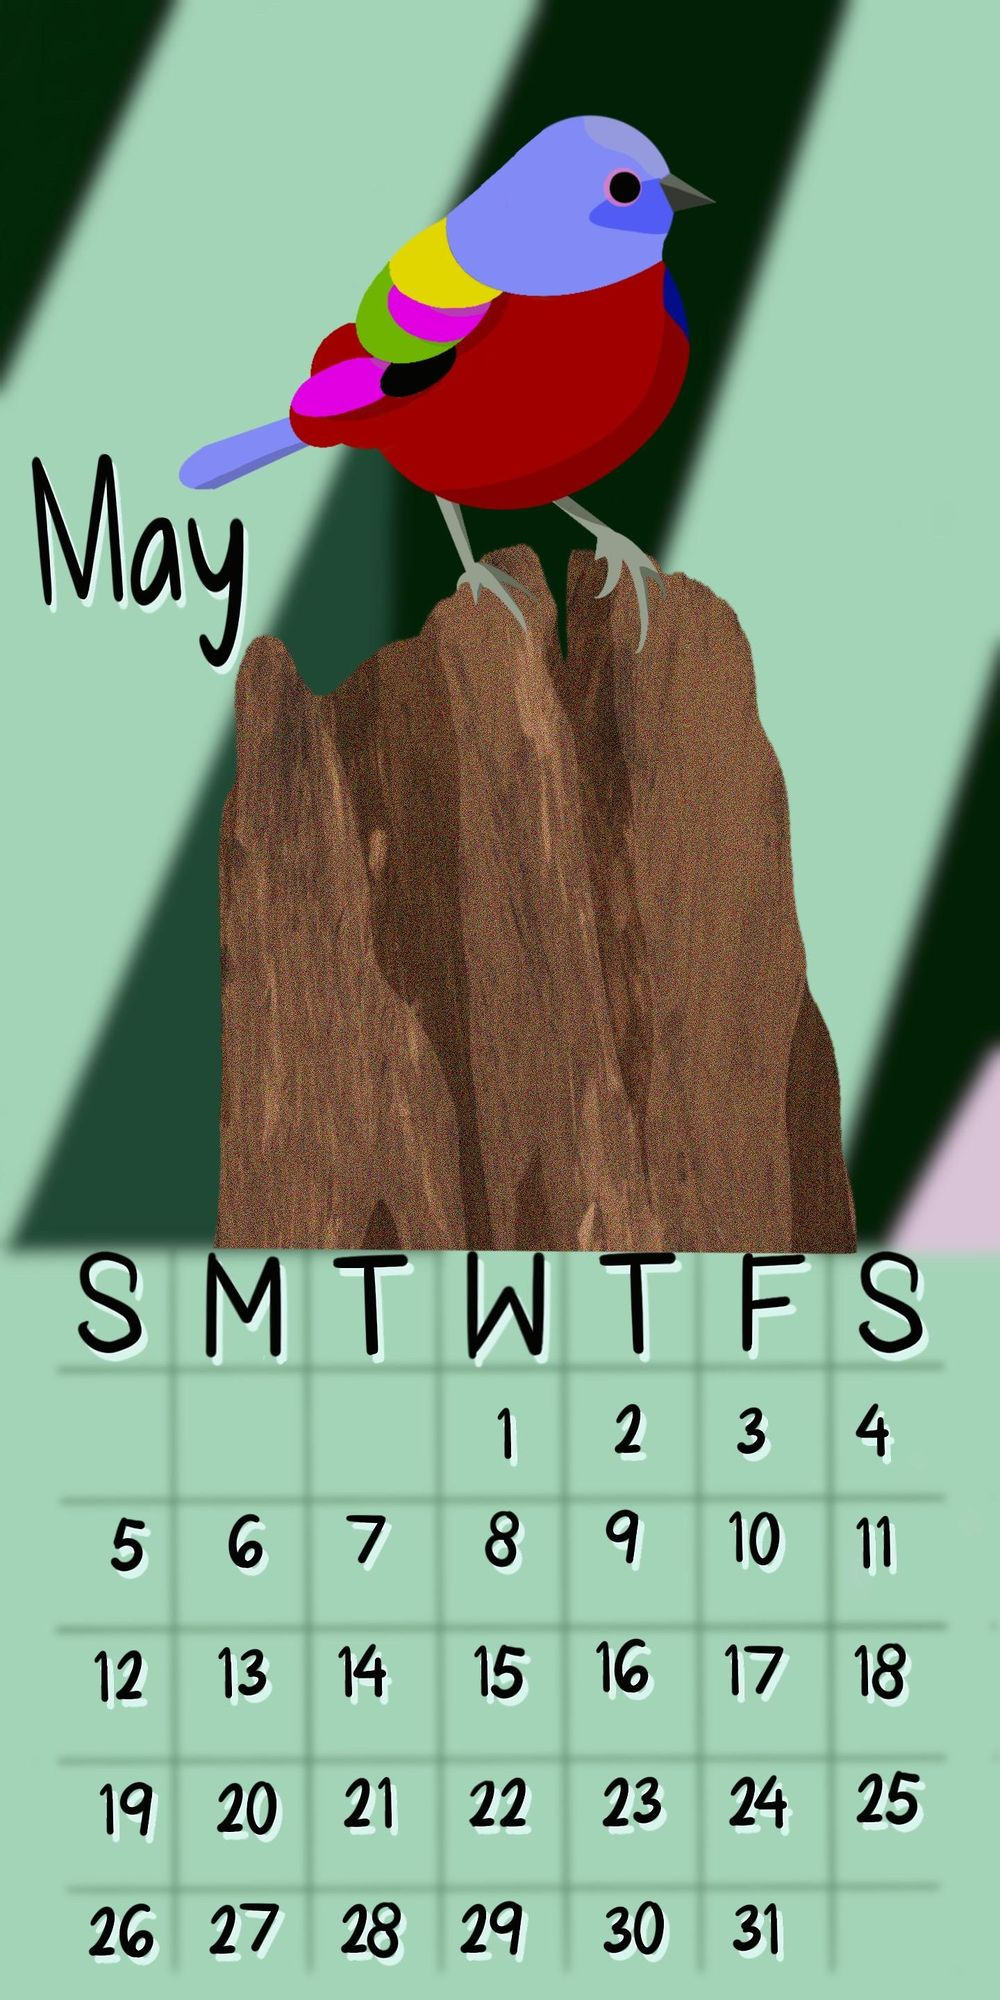 May 2019 Calendar - image 1 - student project